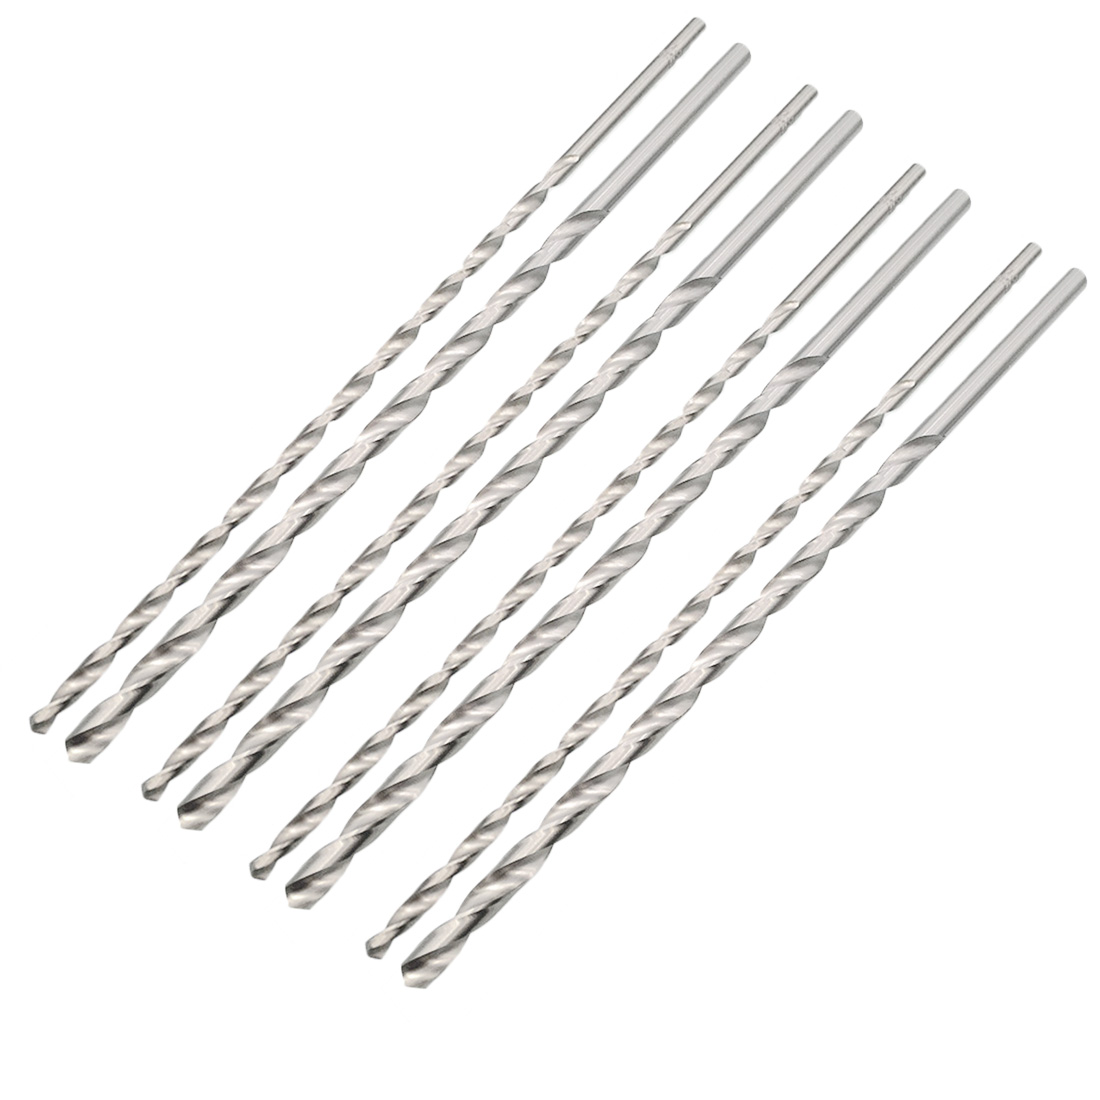 1pc 1MM 5MM HSS Twist Drill Bit Set Diameter 160mm Extra Long Straight Shank Drill Bits For Electric Drills